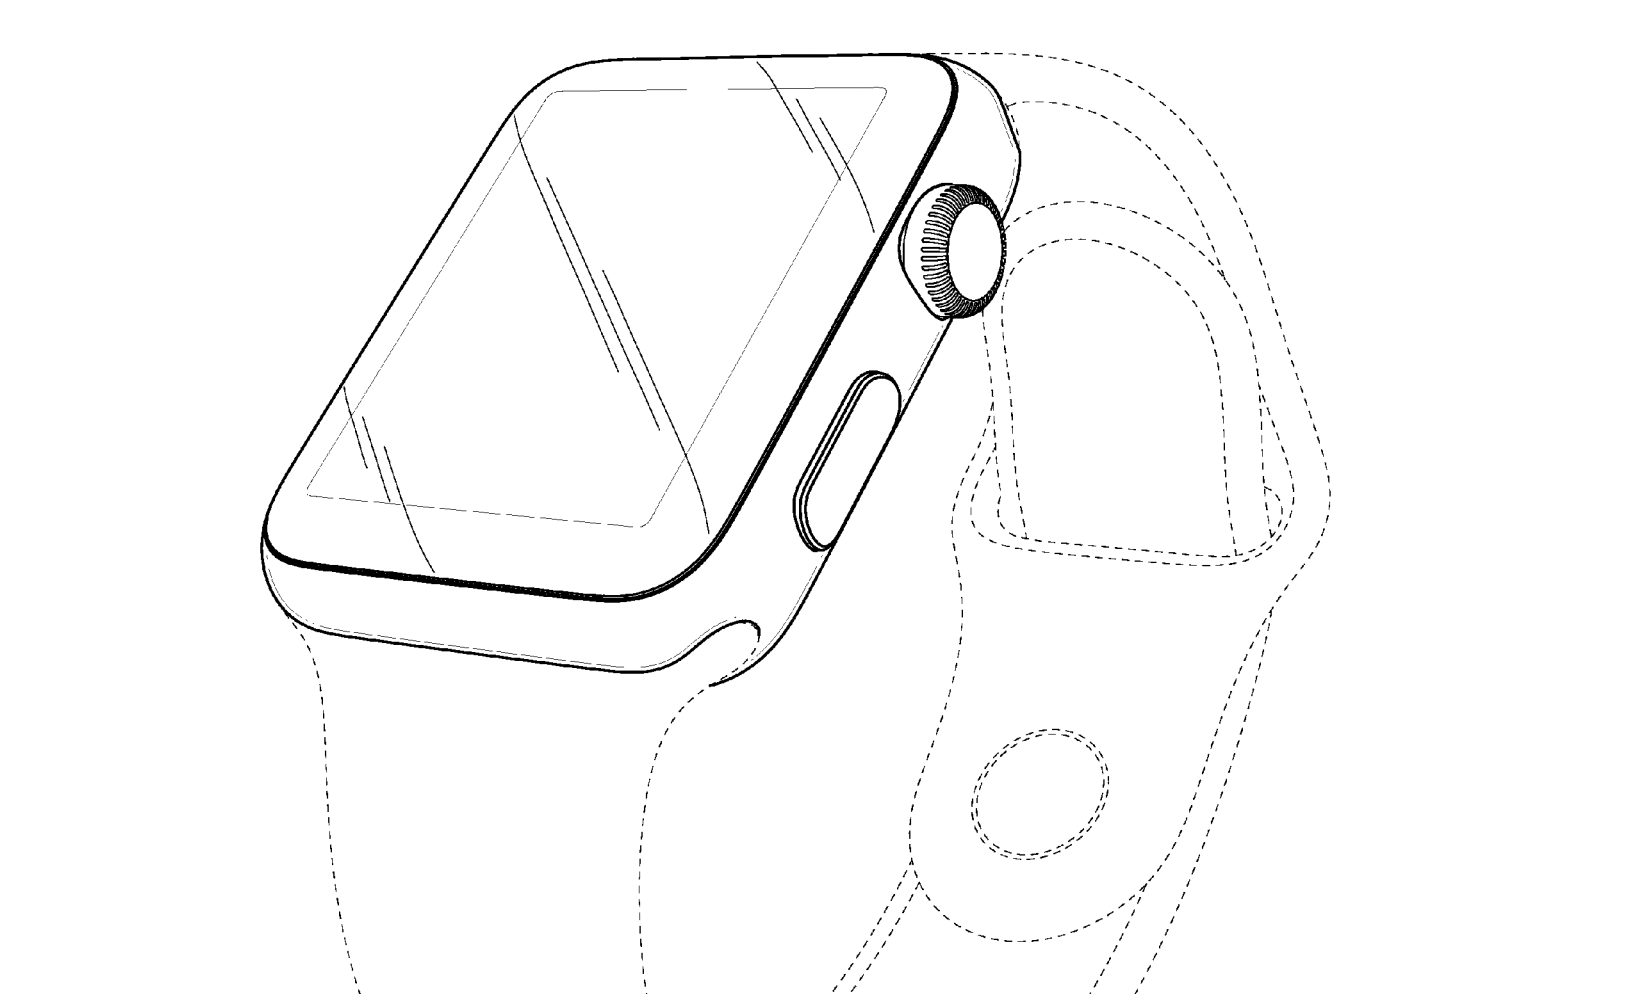 Apple granted design patent for Apple Watch, probably to